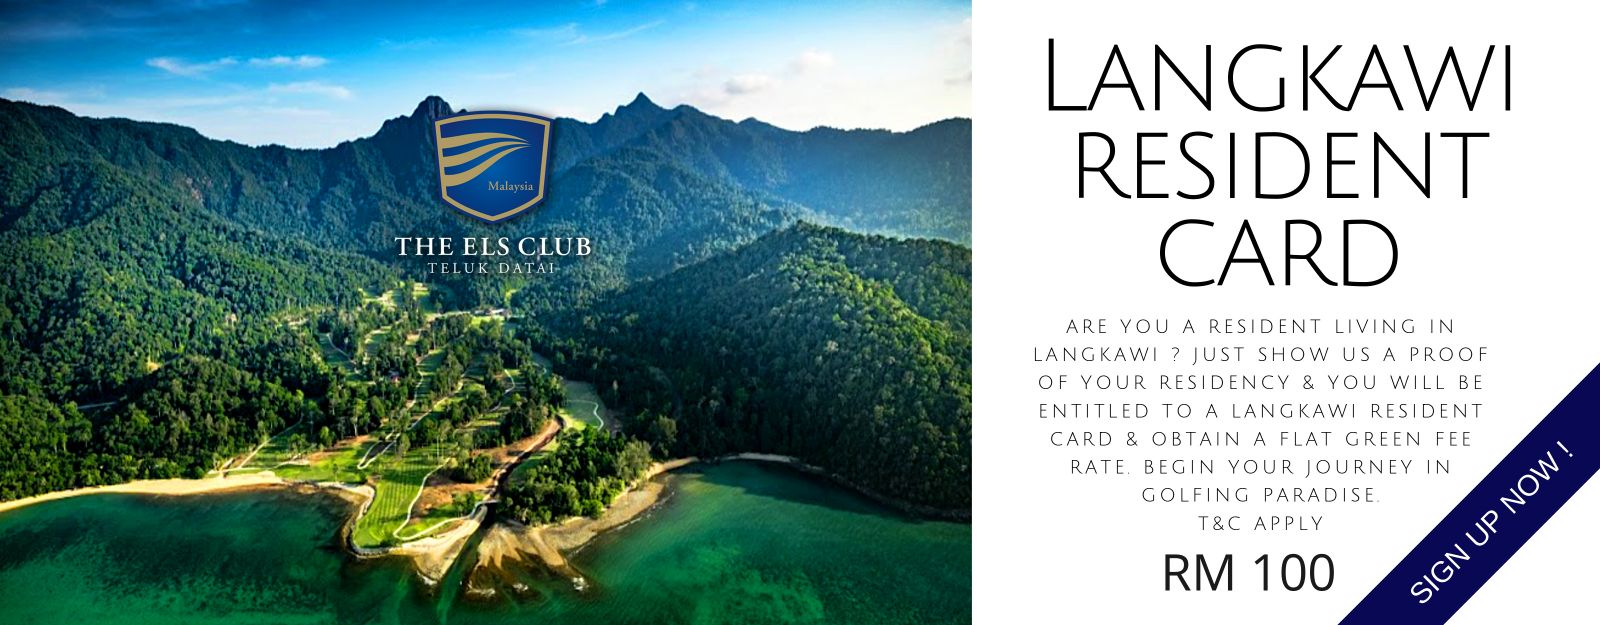 Flyer for a Langkawi Resident Card